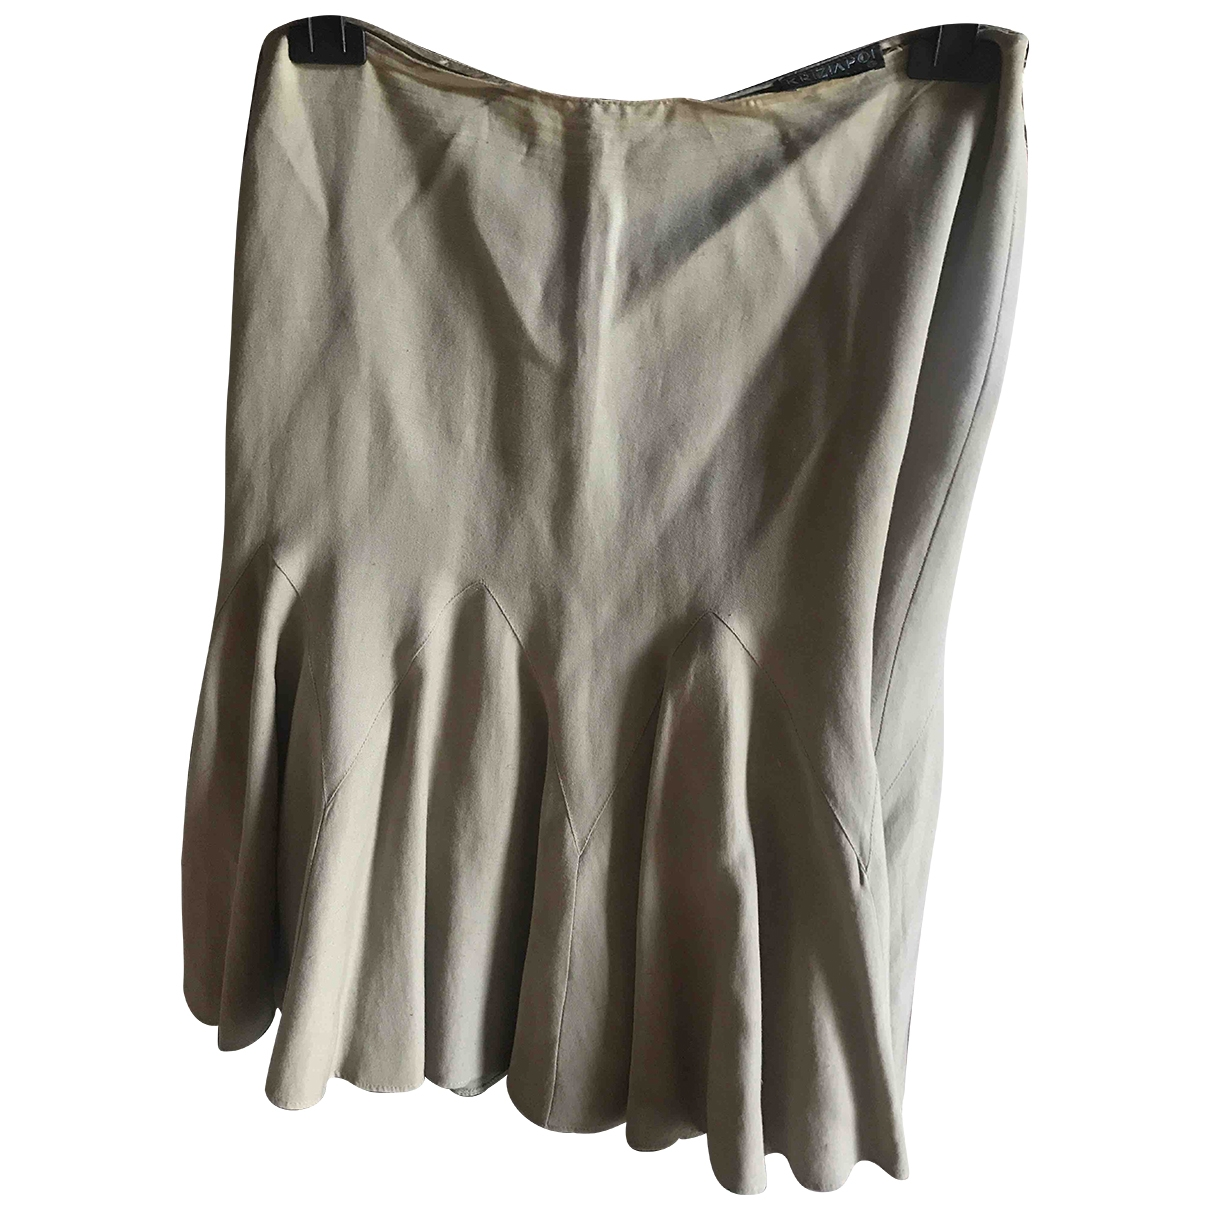 Krizia \N Beige skirt for Women 46 IT